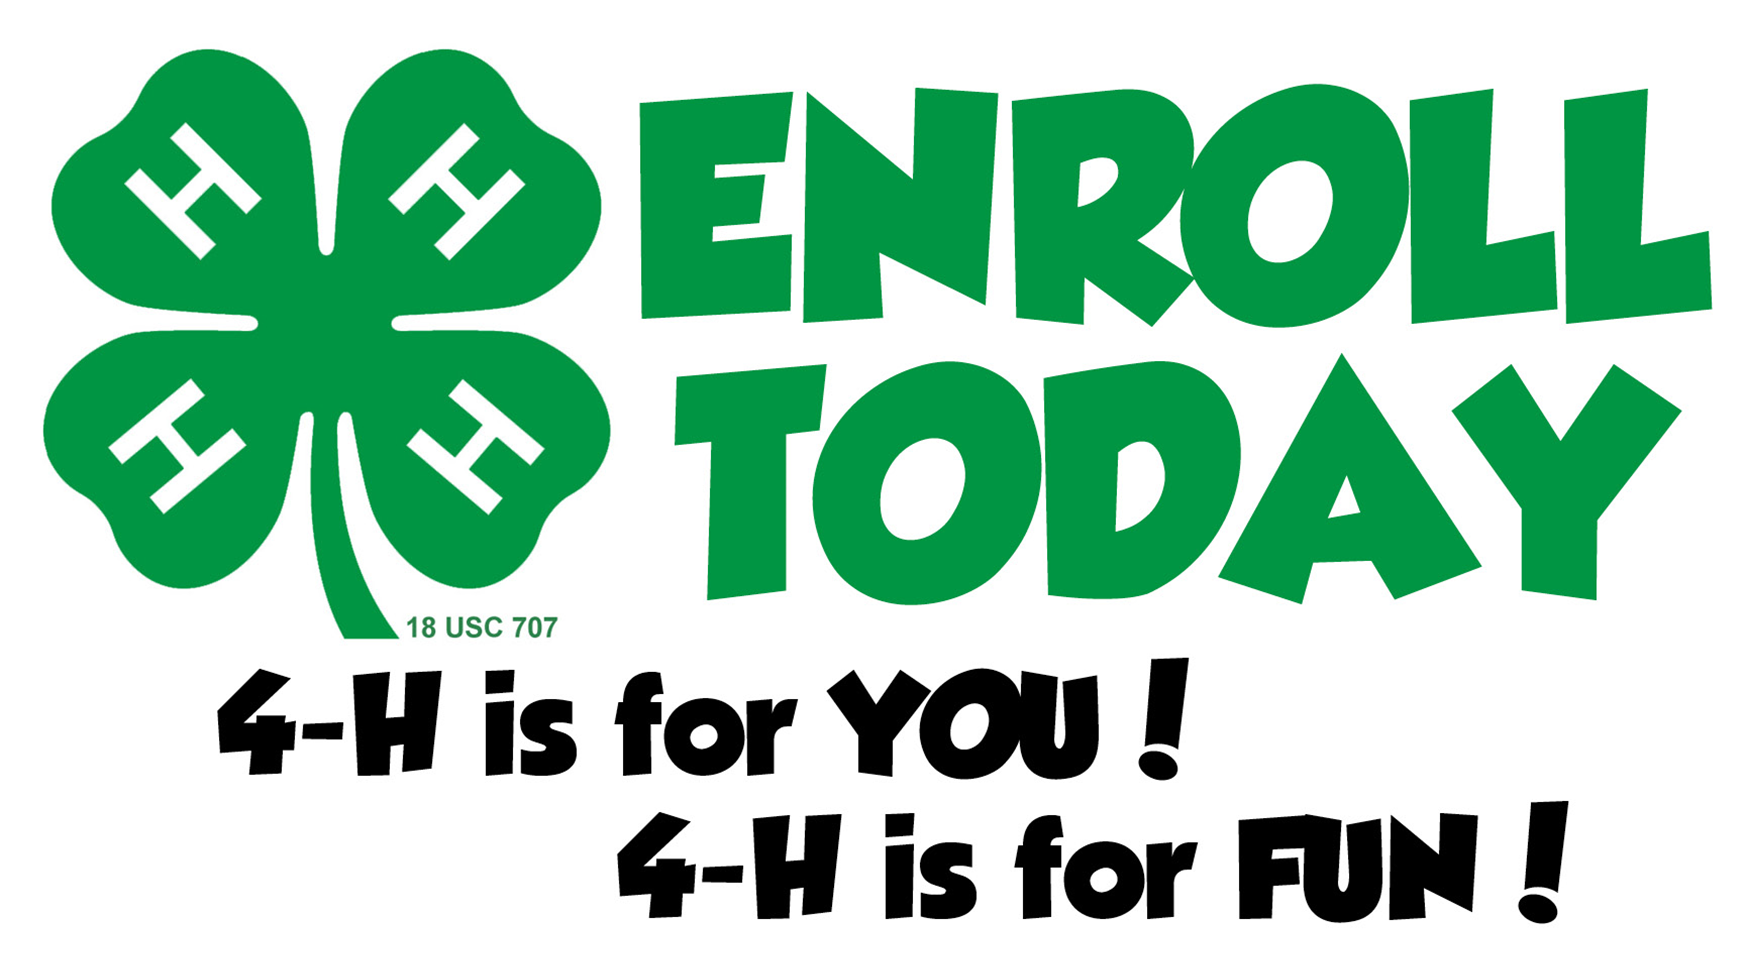 Green 4H clover logo with the words Enroll Today in Green.